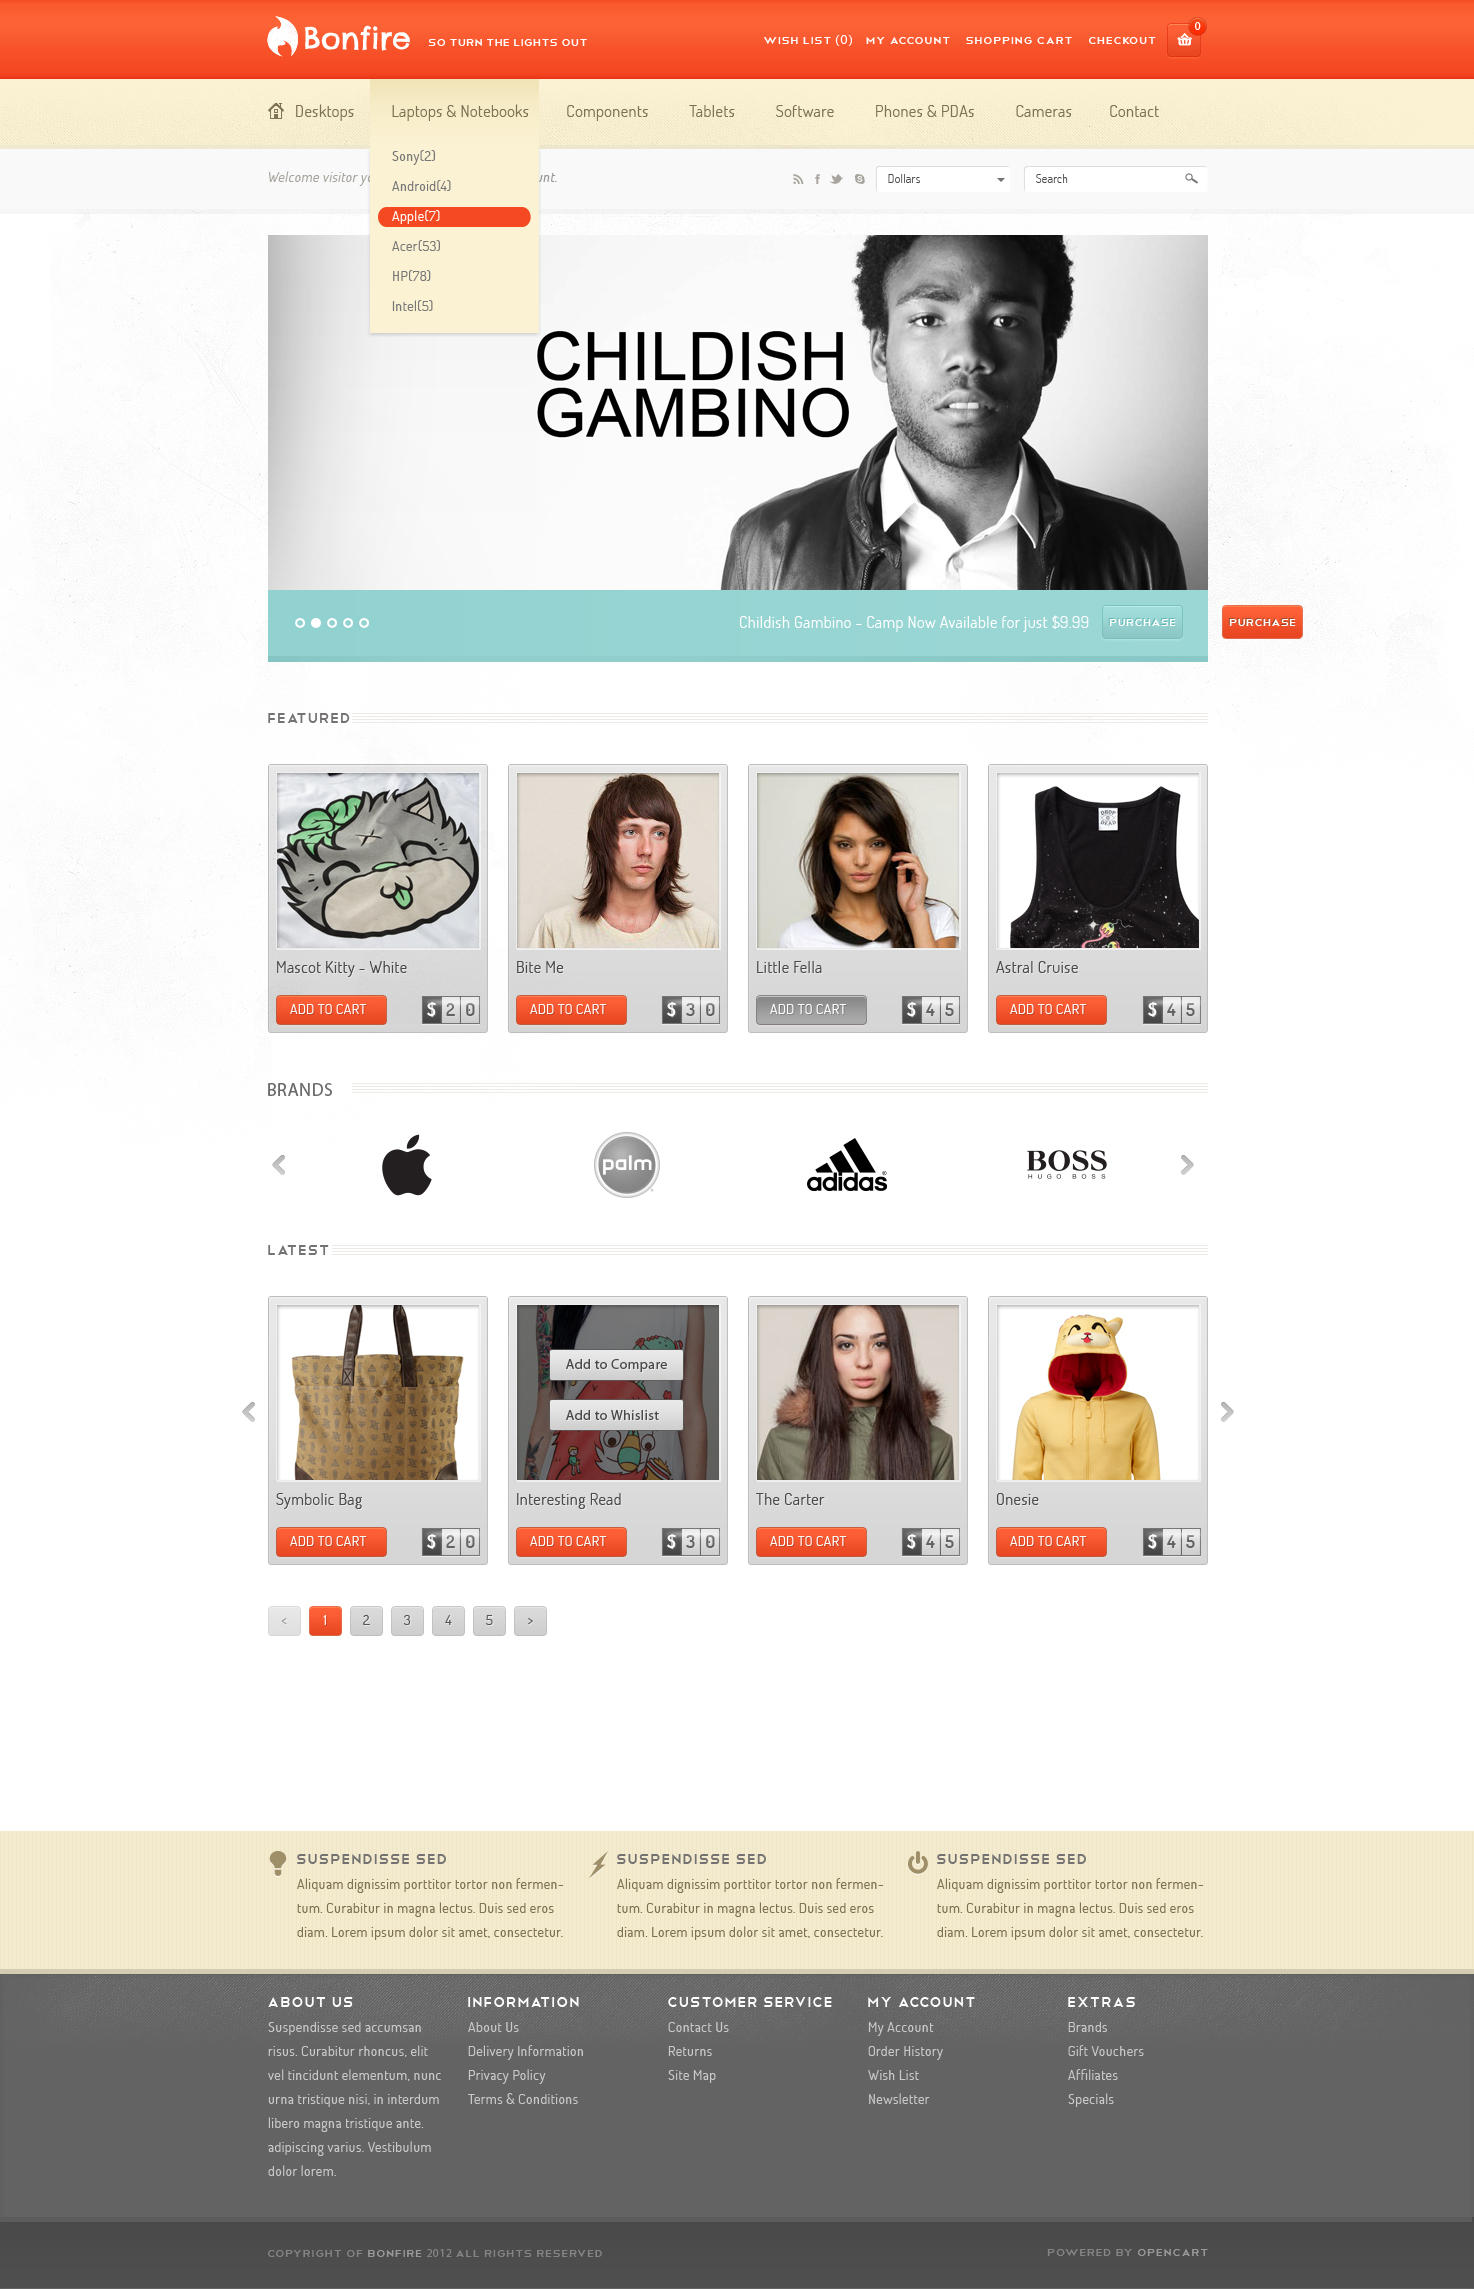 Freebies Bonfire eCommerce Design by sunilbjoshi